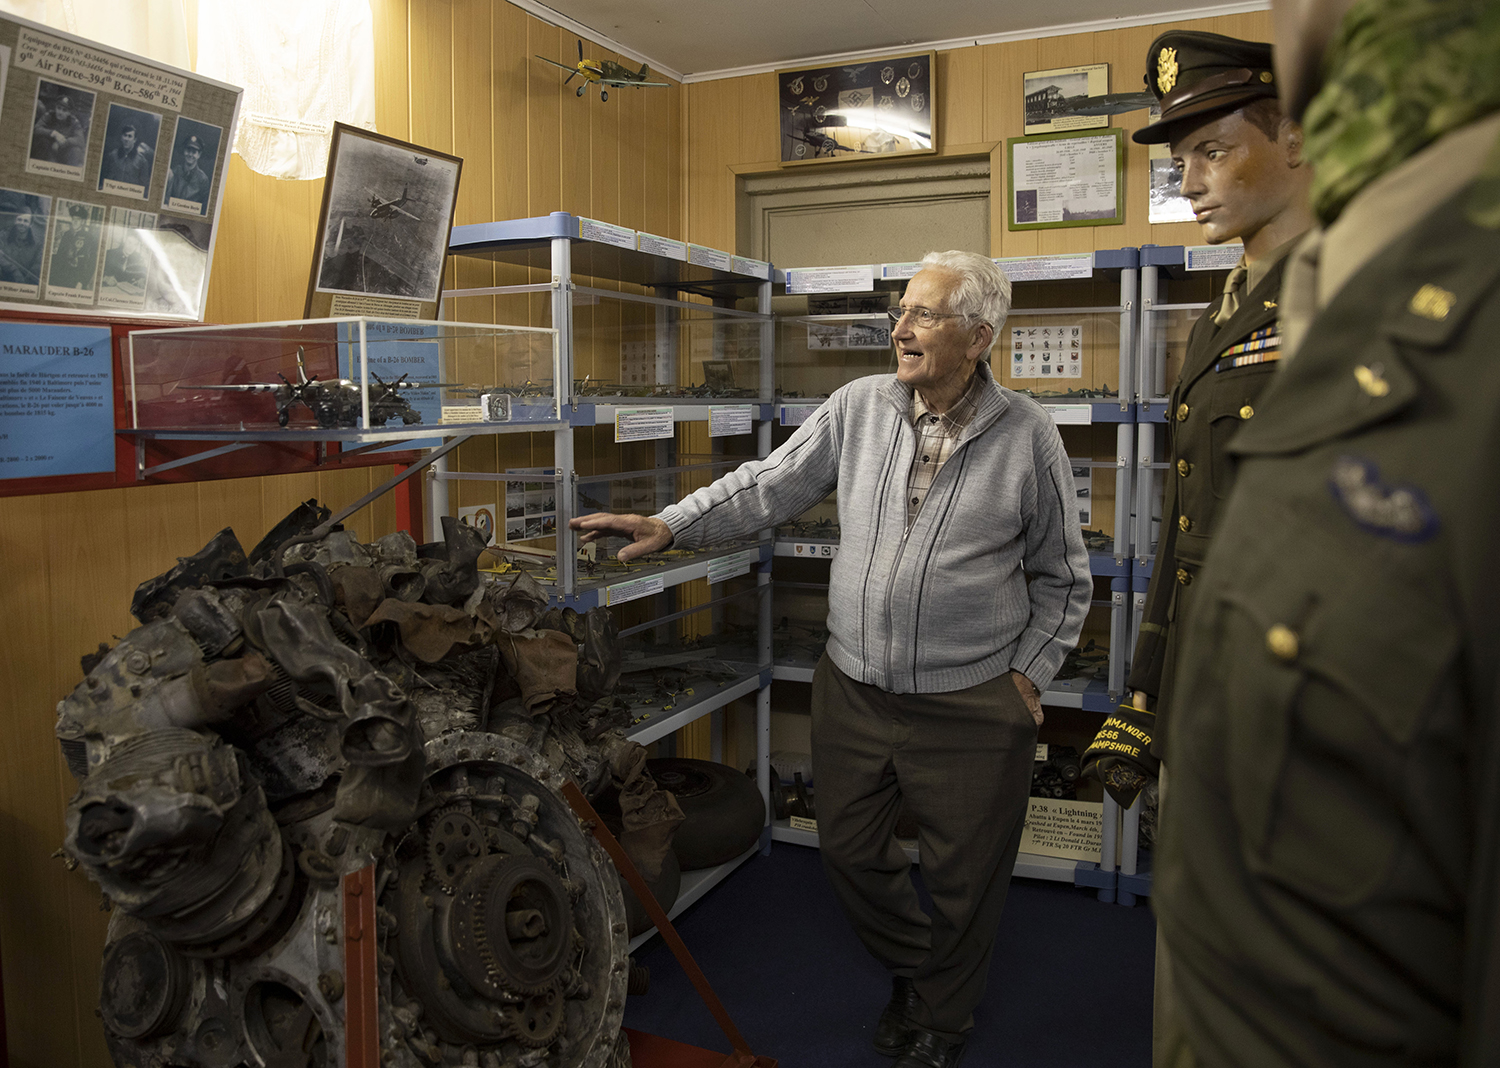 In this photo taken on Thursday, Nov. 7, 2019, Marcel Schmetz shows the motor of a crashed World War II Marauder B-26 at the Remember Museum 39-45 in Thimister-Clermont, Belgium. (Virginia Mayo/AP)